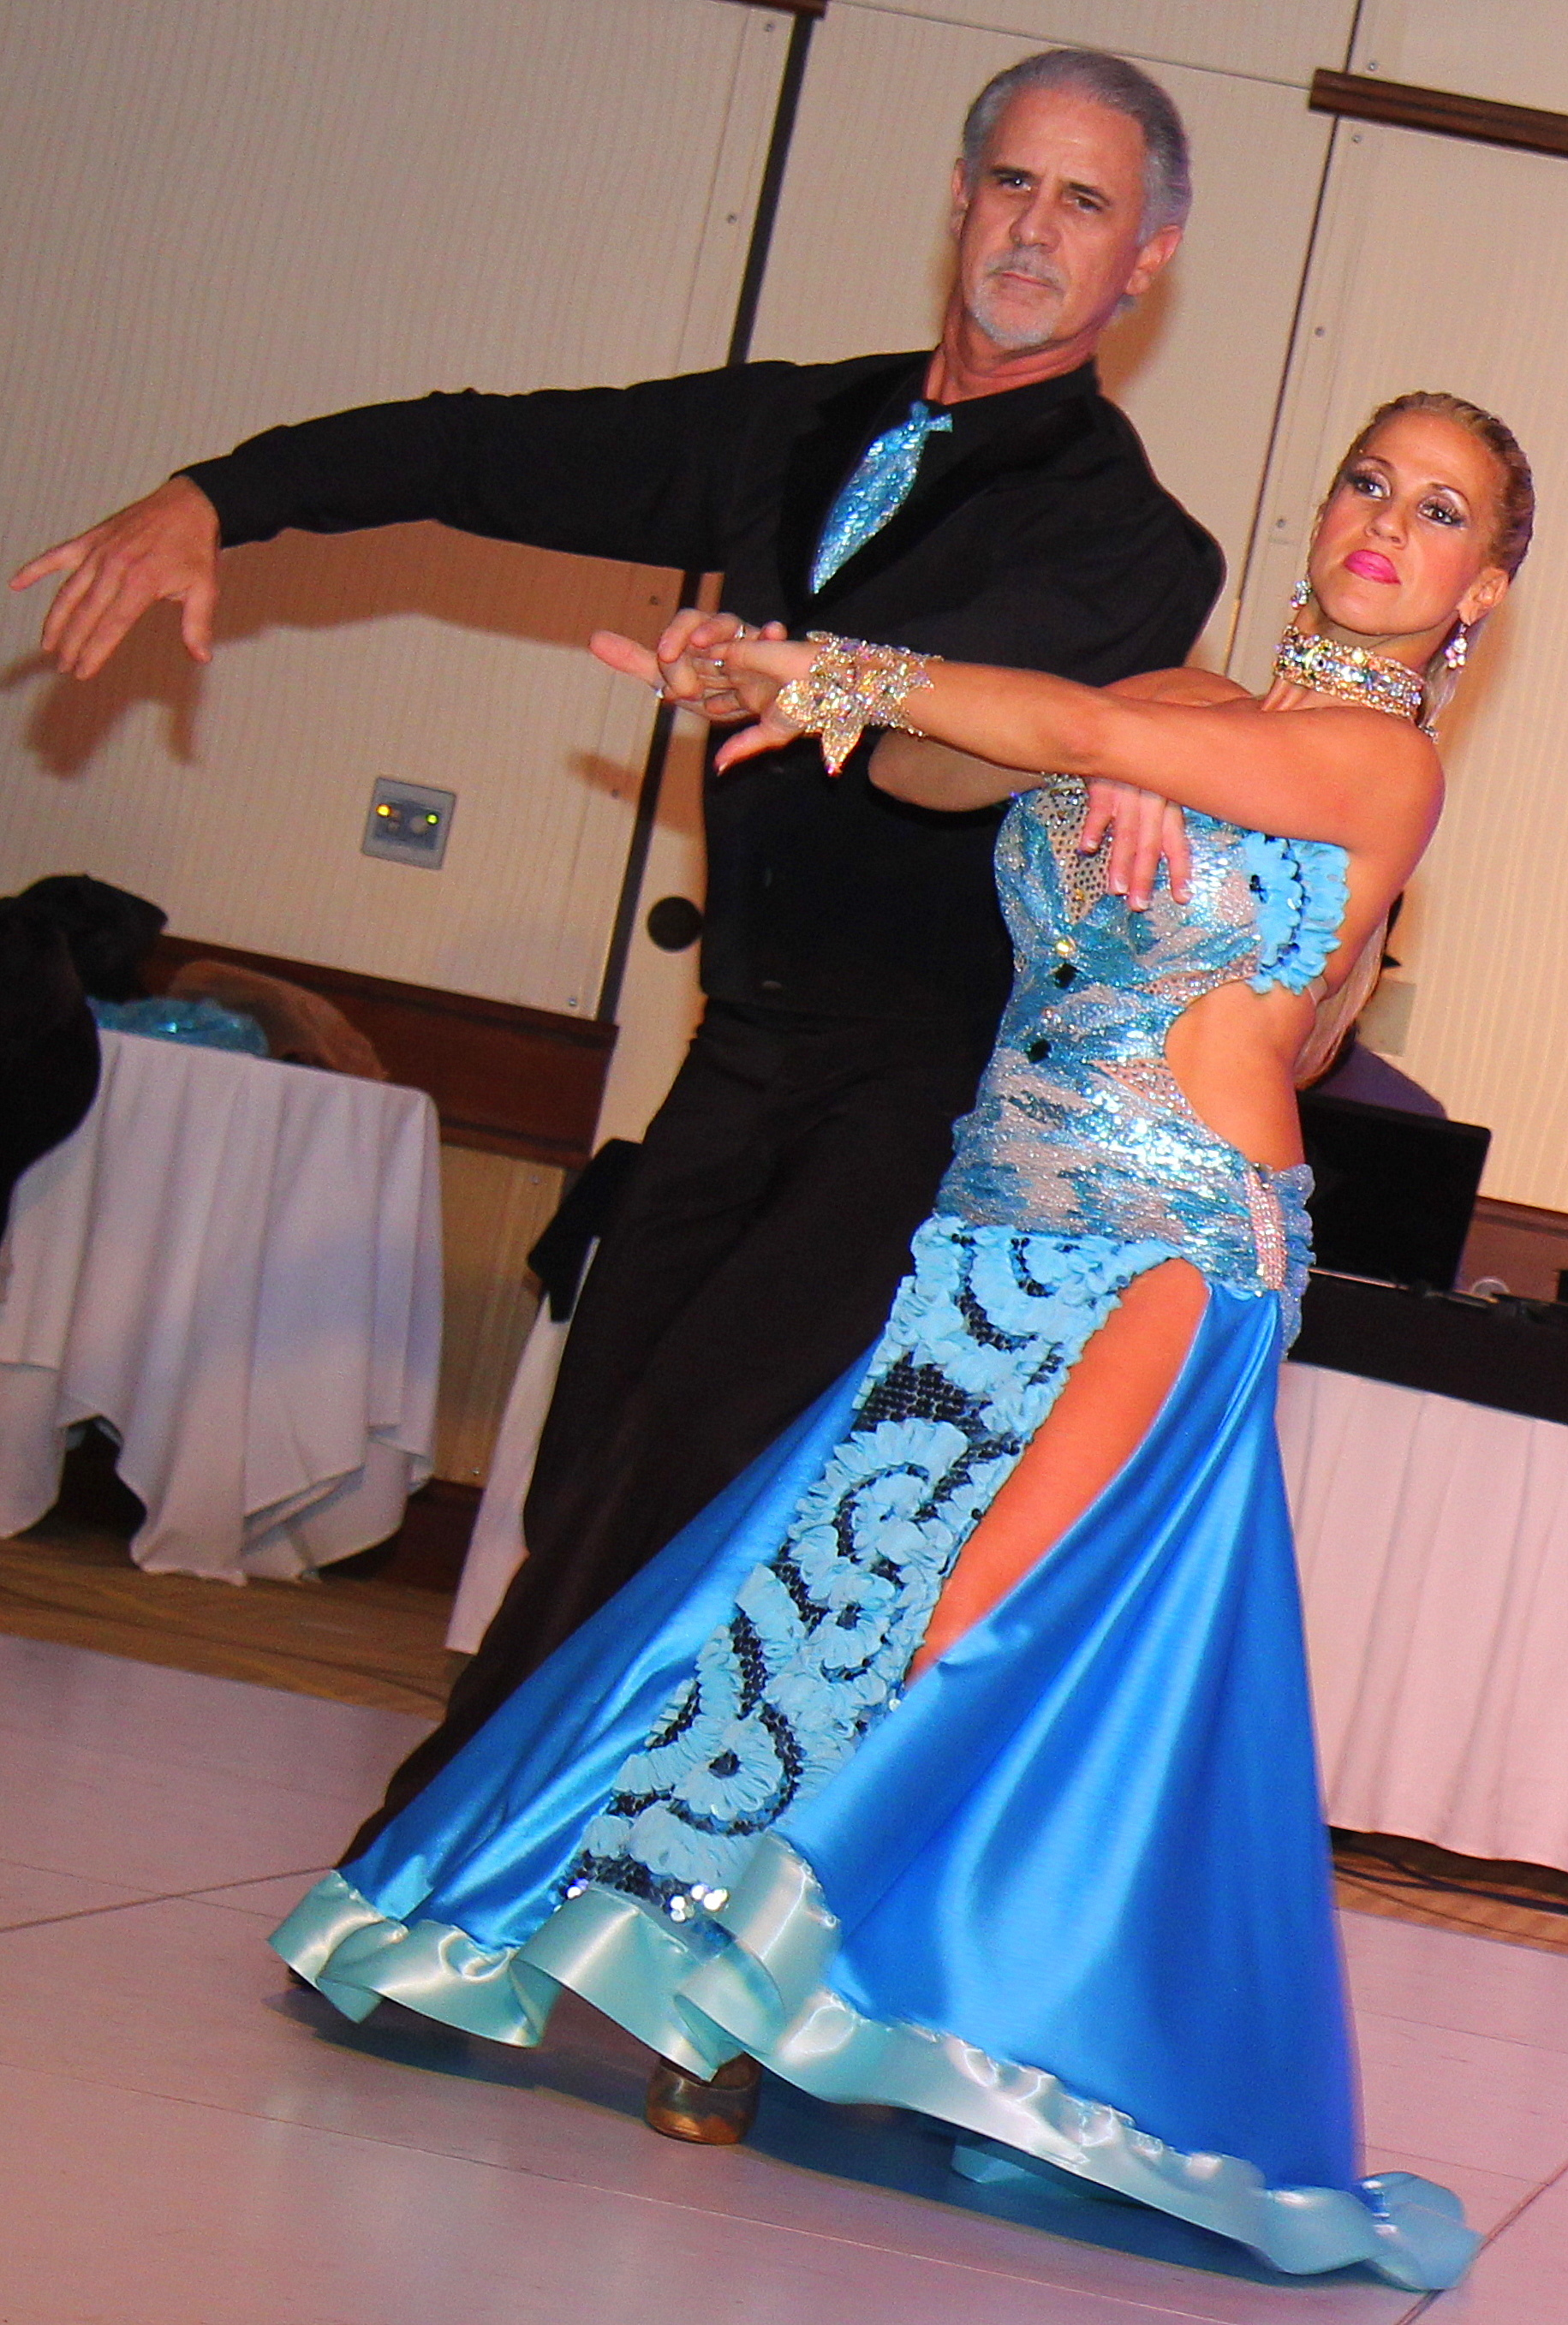 Ballroom Dance Studio Irvine in OC